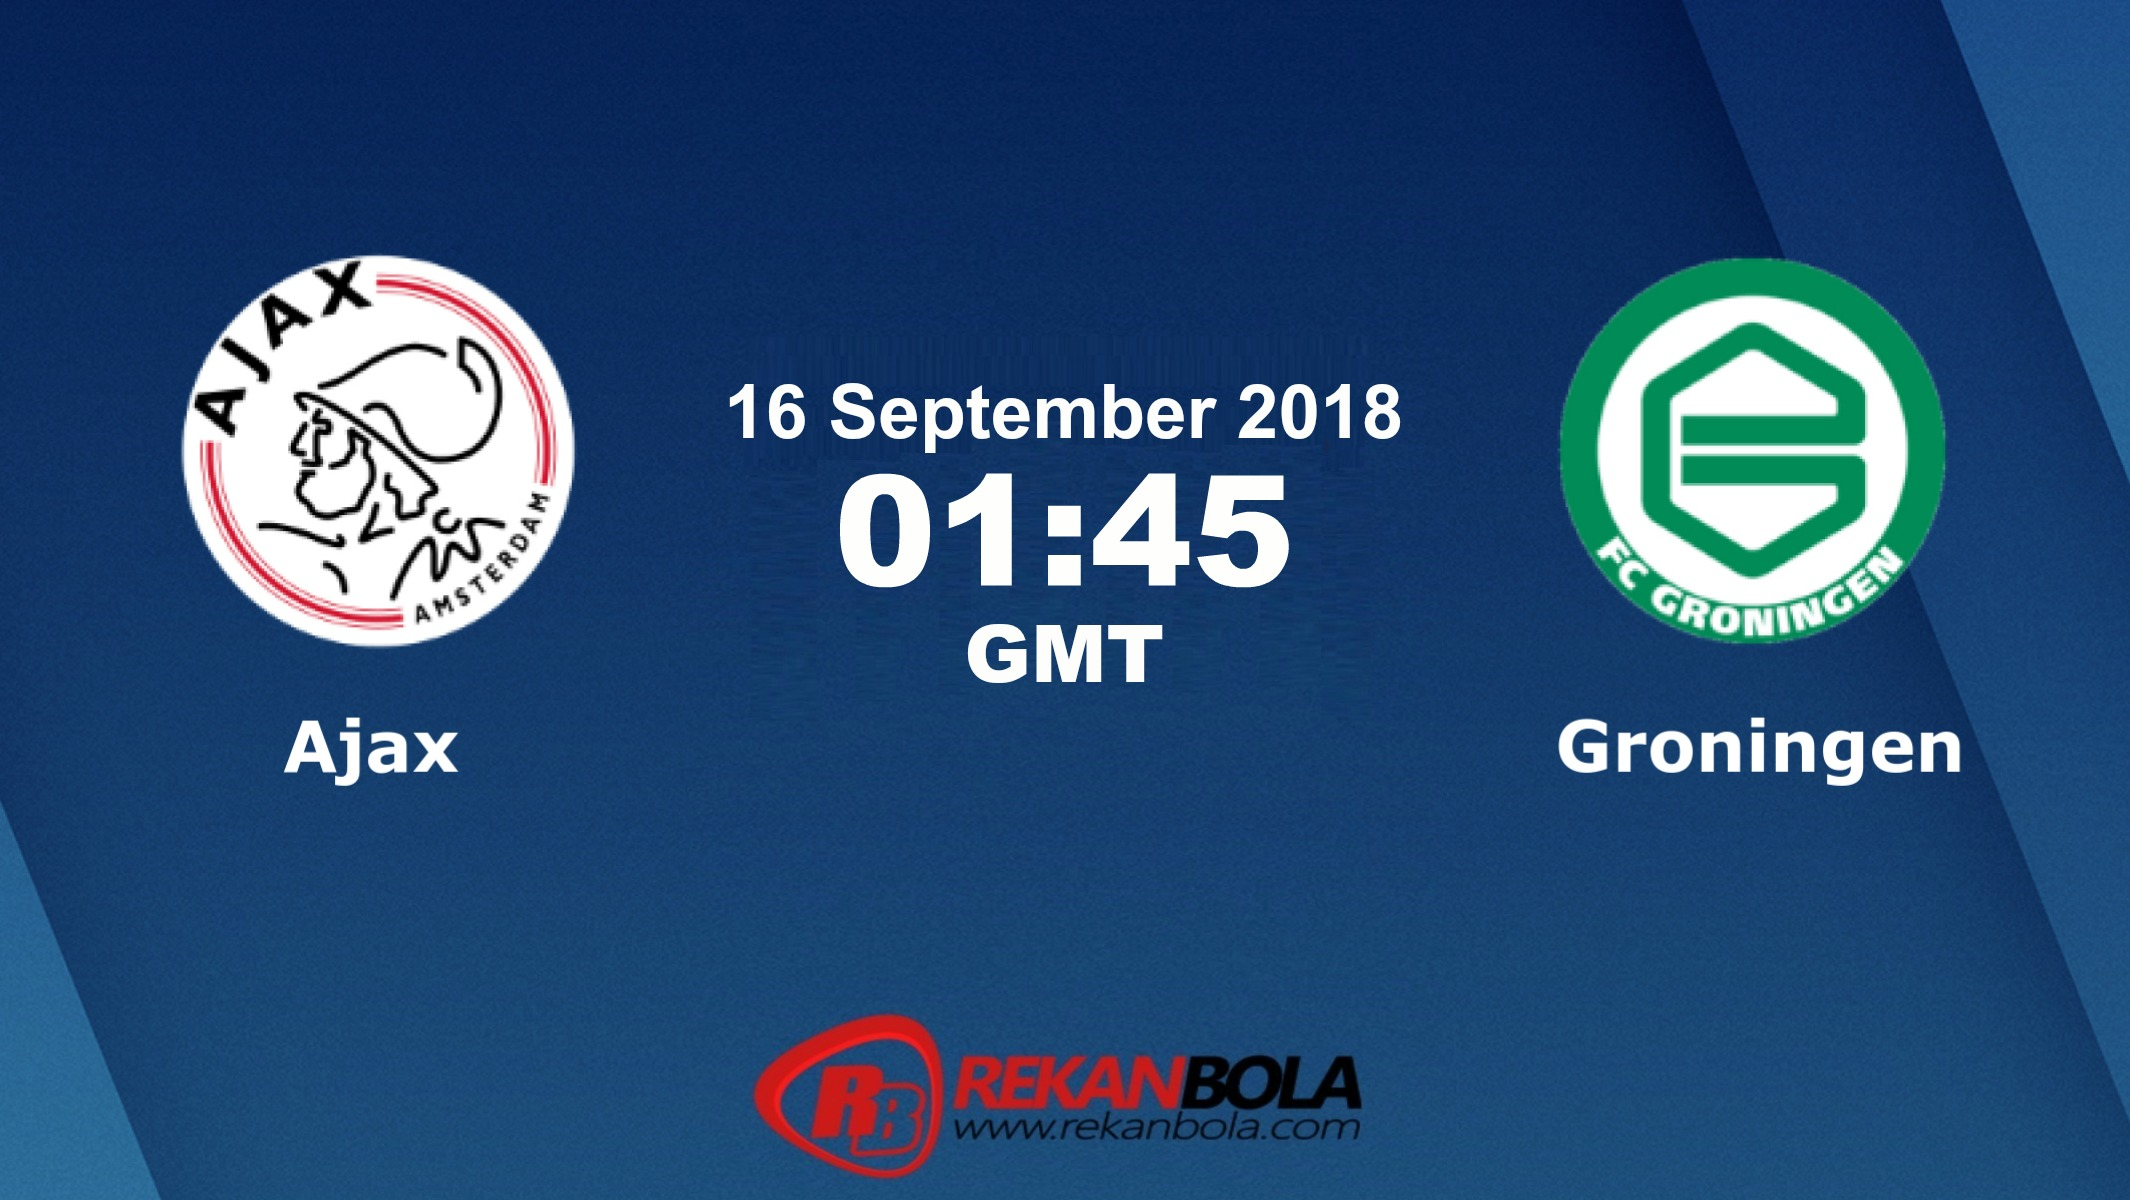 Nonton Siaran Live Streaming Ajax Vs Groningen 16 September 2018